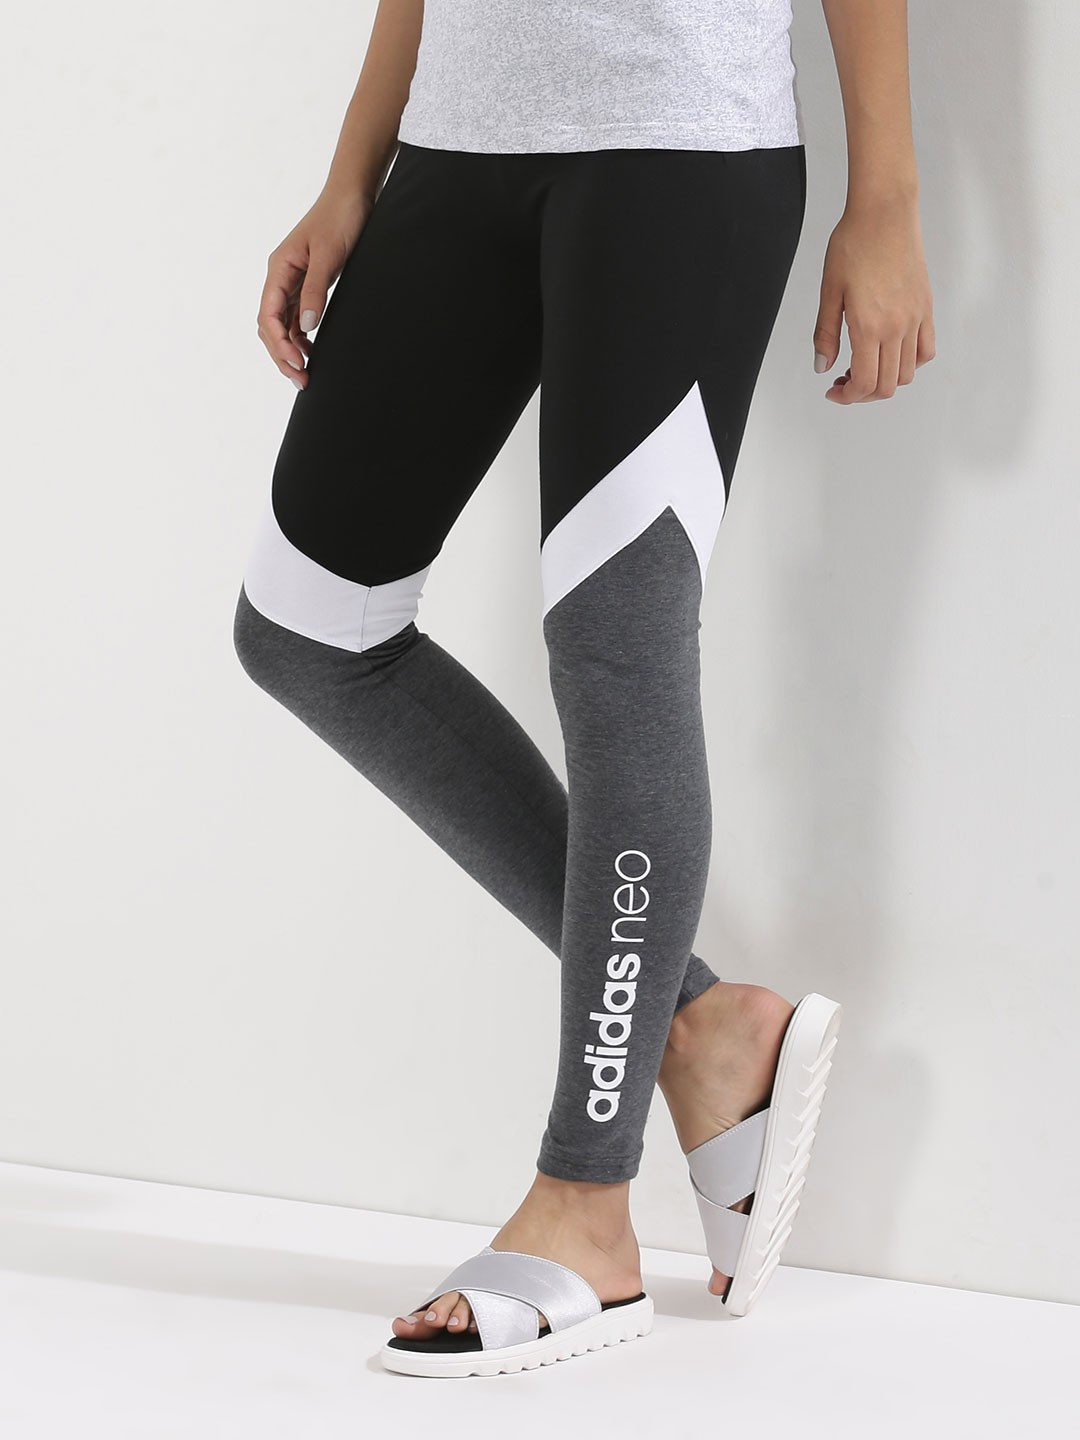 Buy adidas neo tights   OFF70% Discounted e417f6ff97